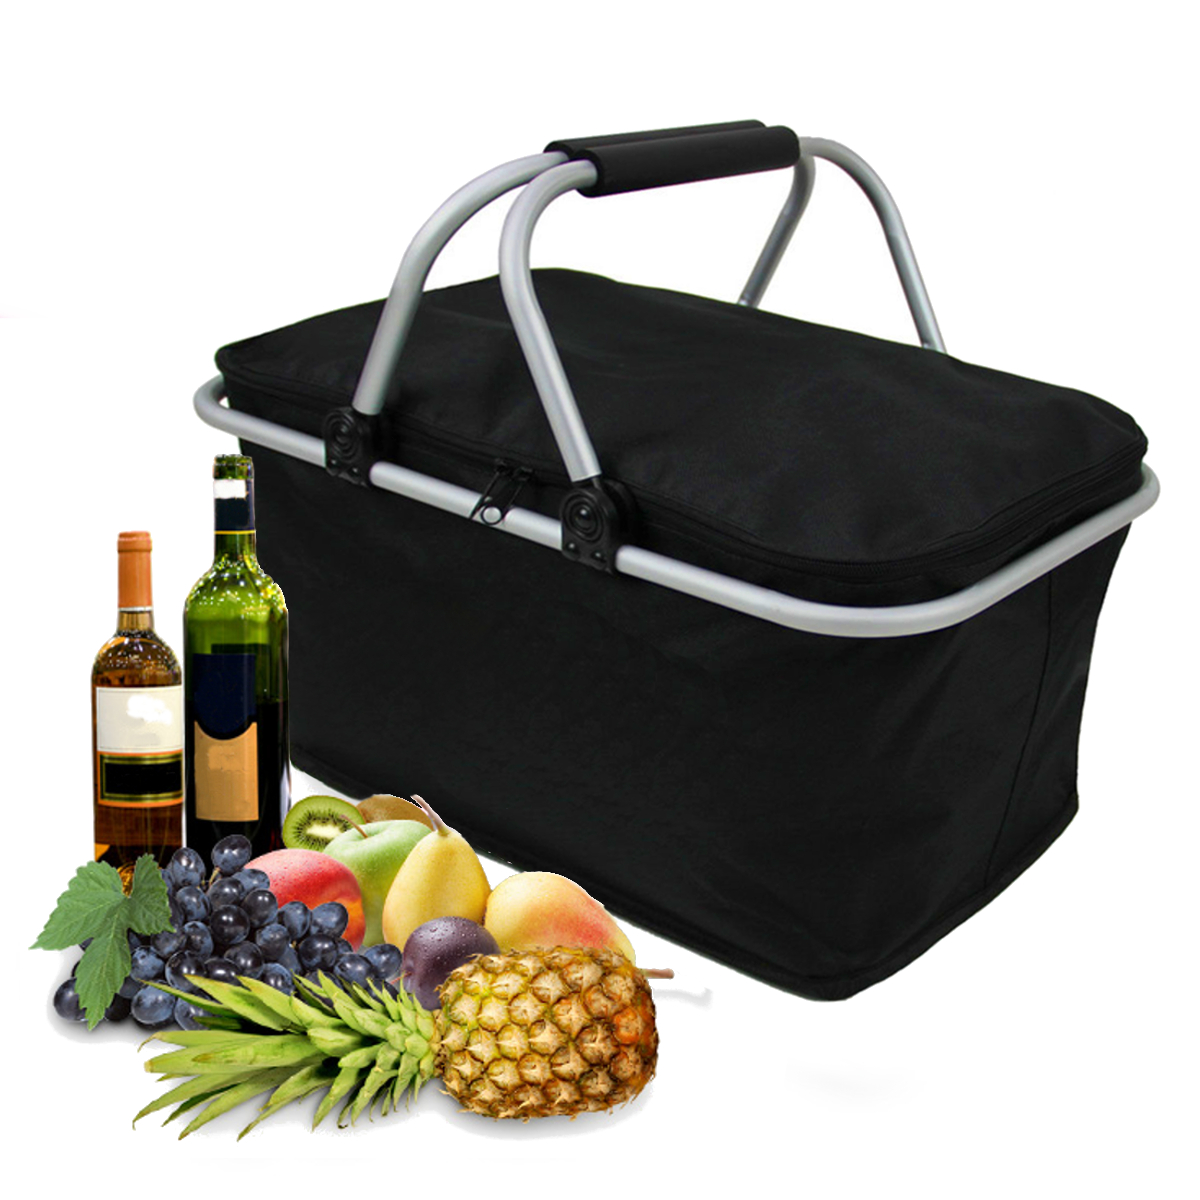 IPRee 30L Folding Camp Picnic Insulated Bag Ice Cooler